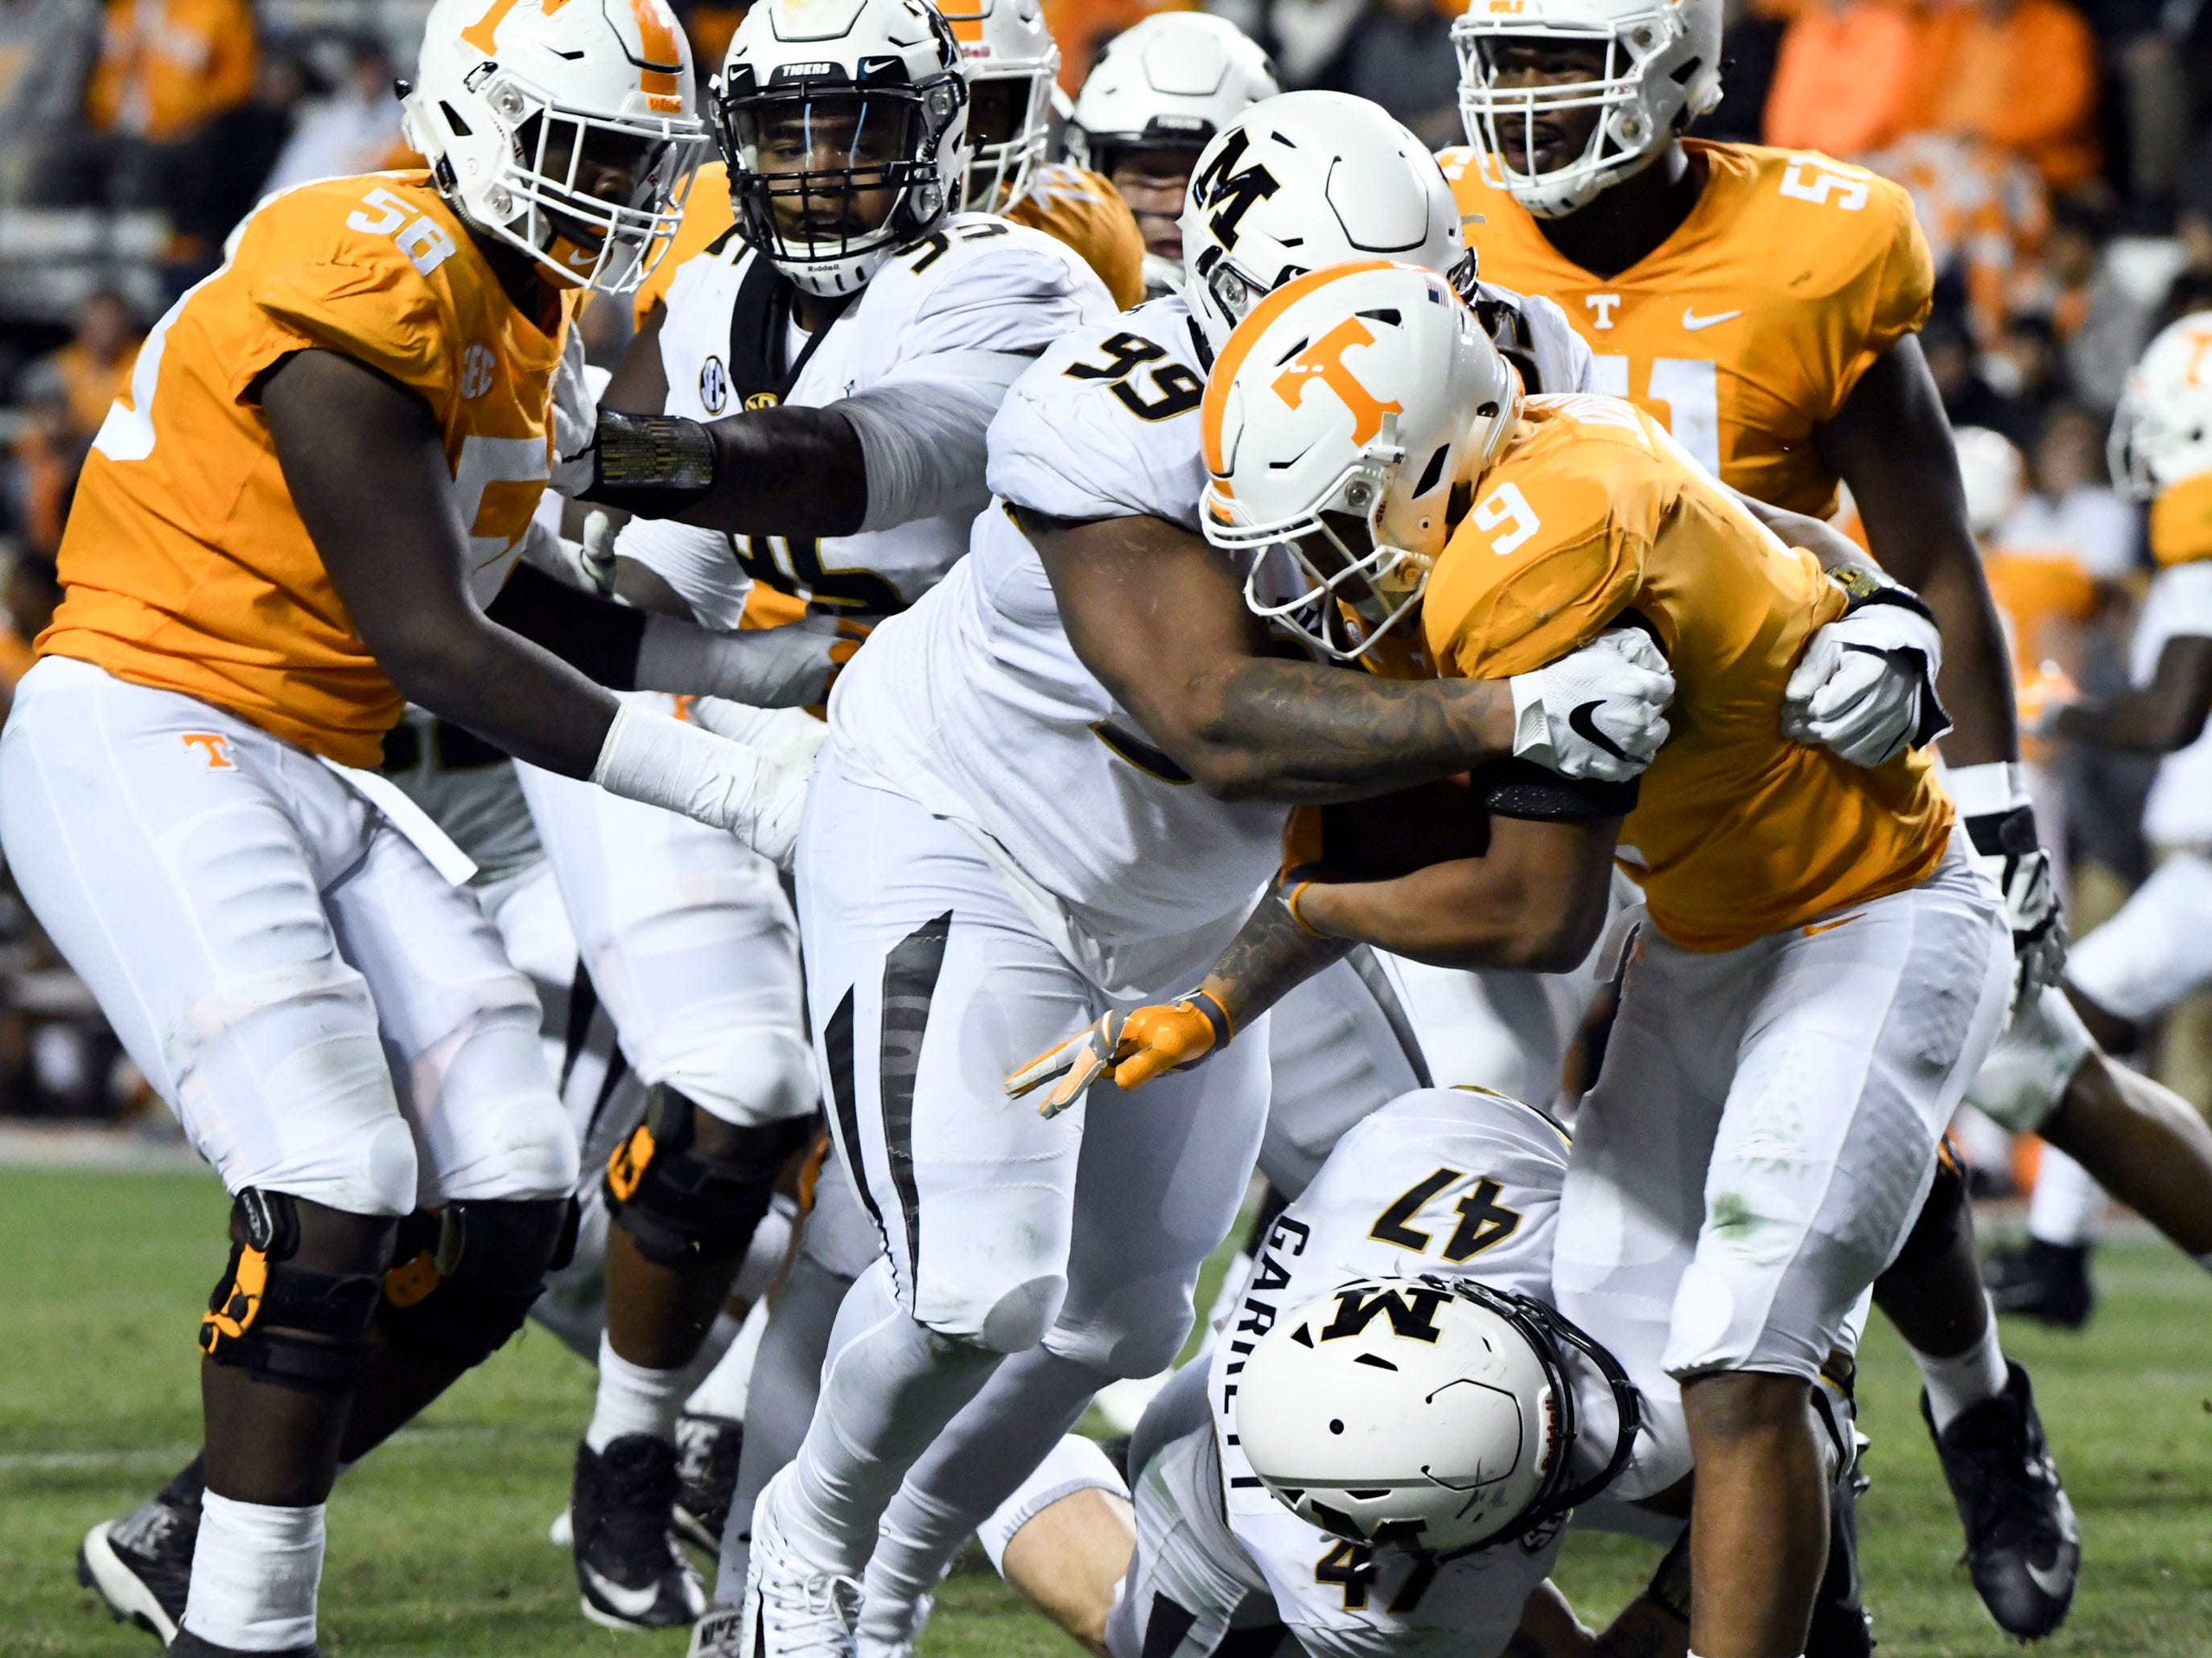 Tennessee running back Tim Jordan (9) is wrapped up by Missouri defensive lineman Walter Palmore (99) during the Tennessee and Missouri football game on Saturday, November 17, 2018.